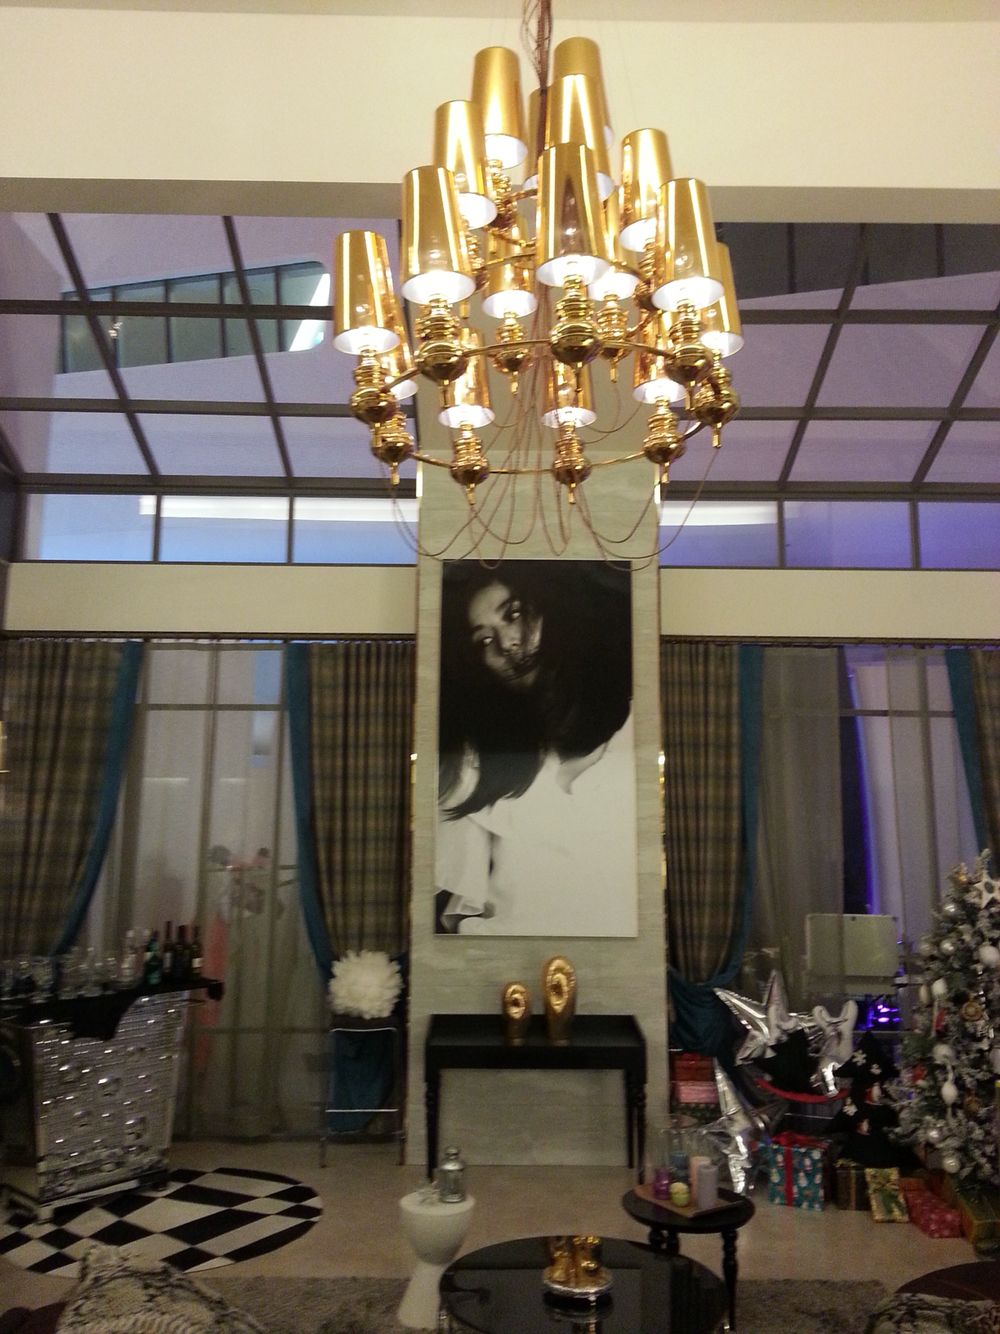 Gold ceiling light @ cheon song yi ywcfts home #opulence